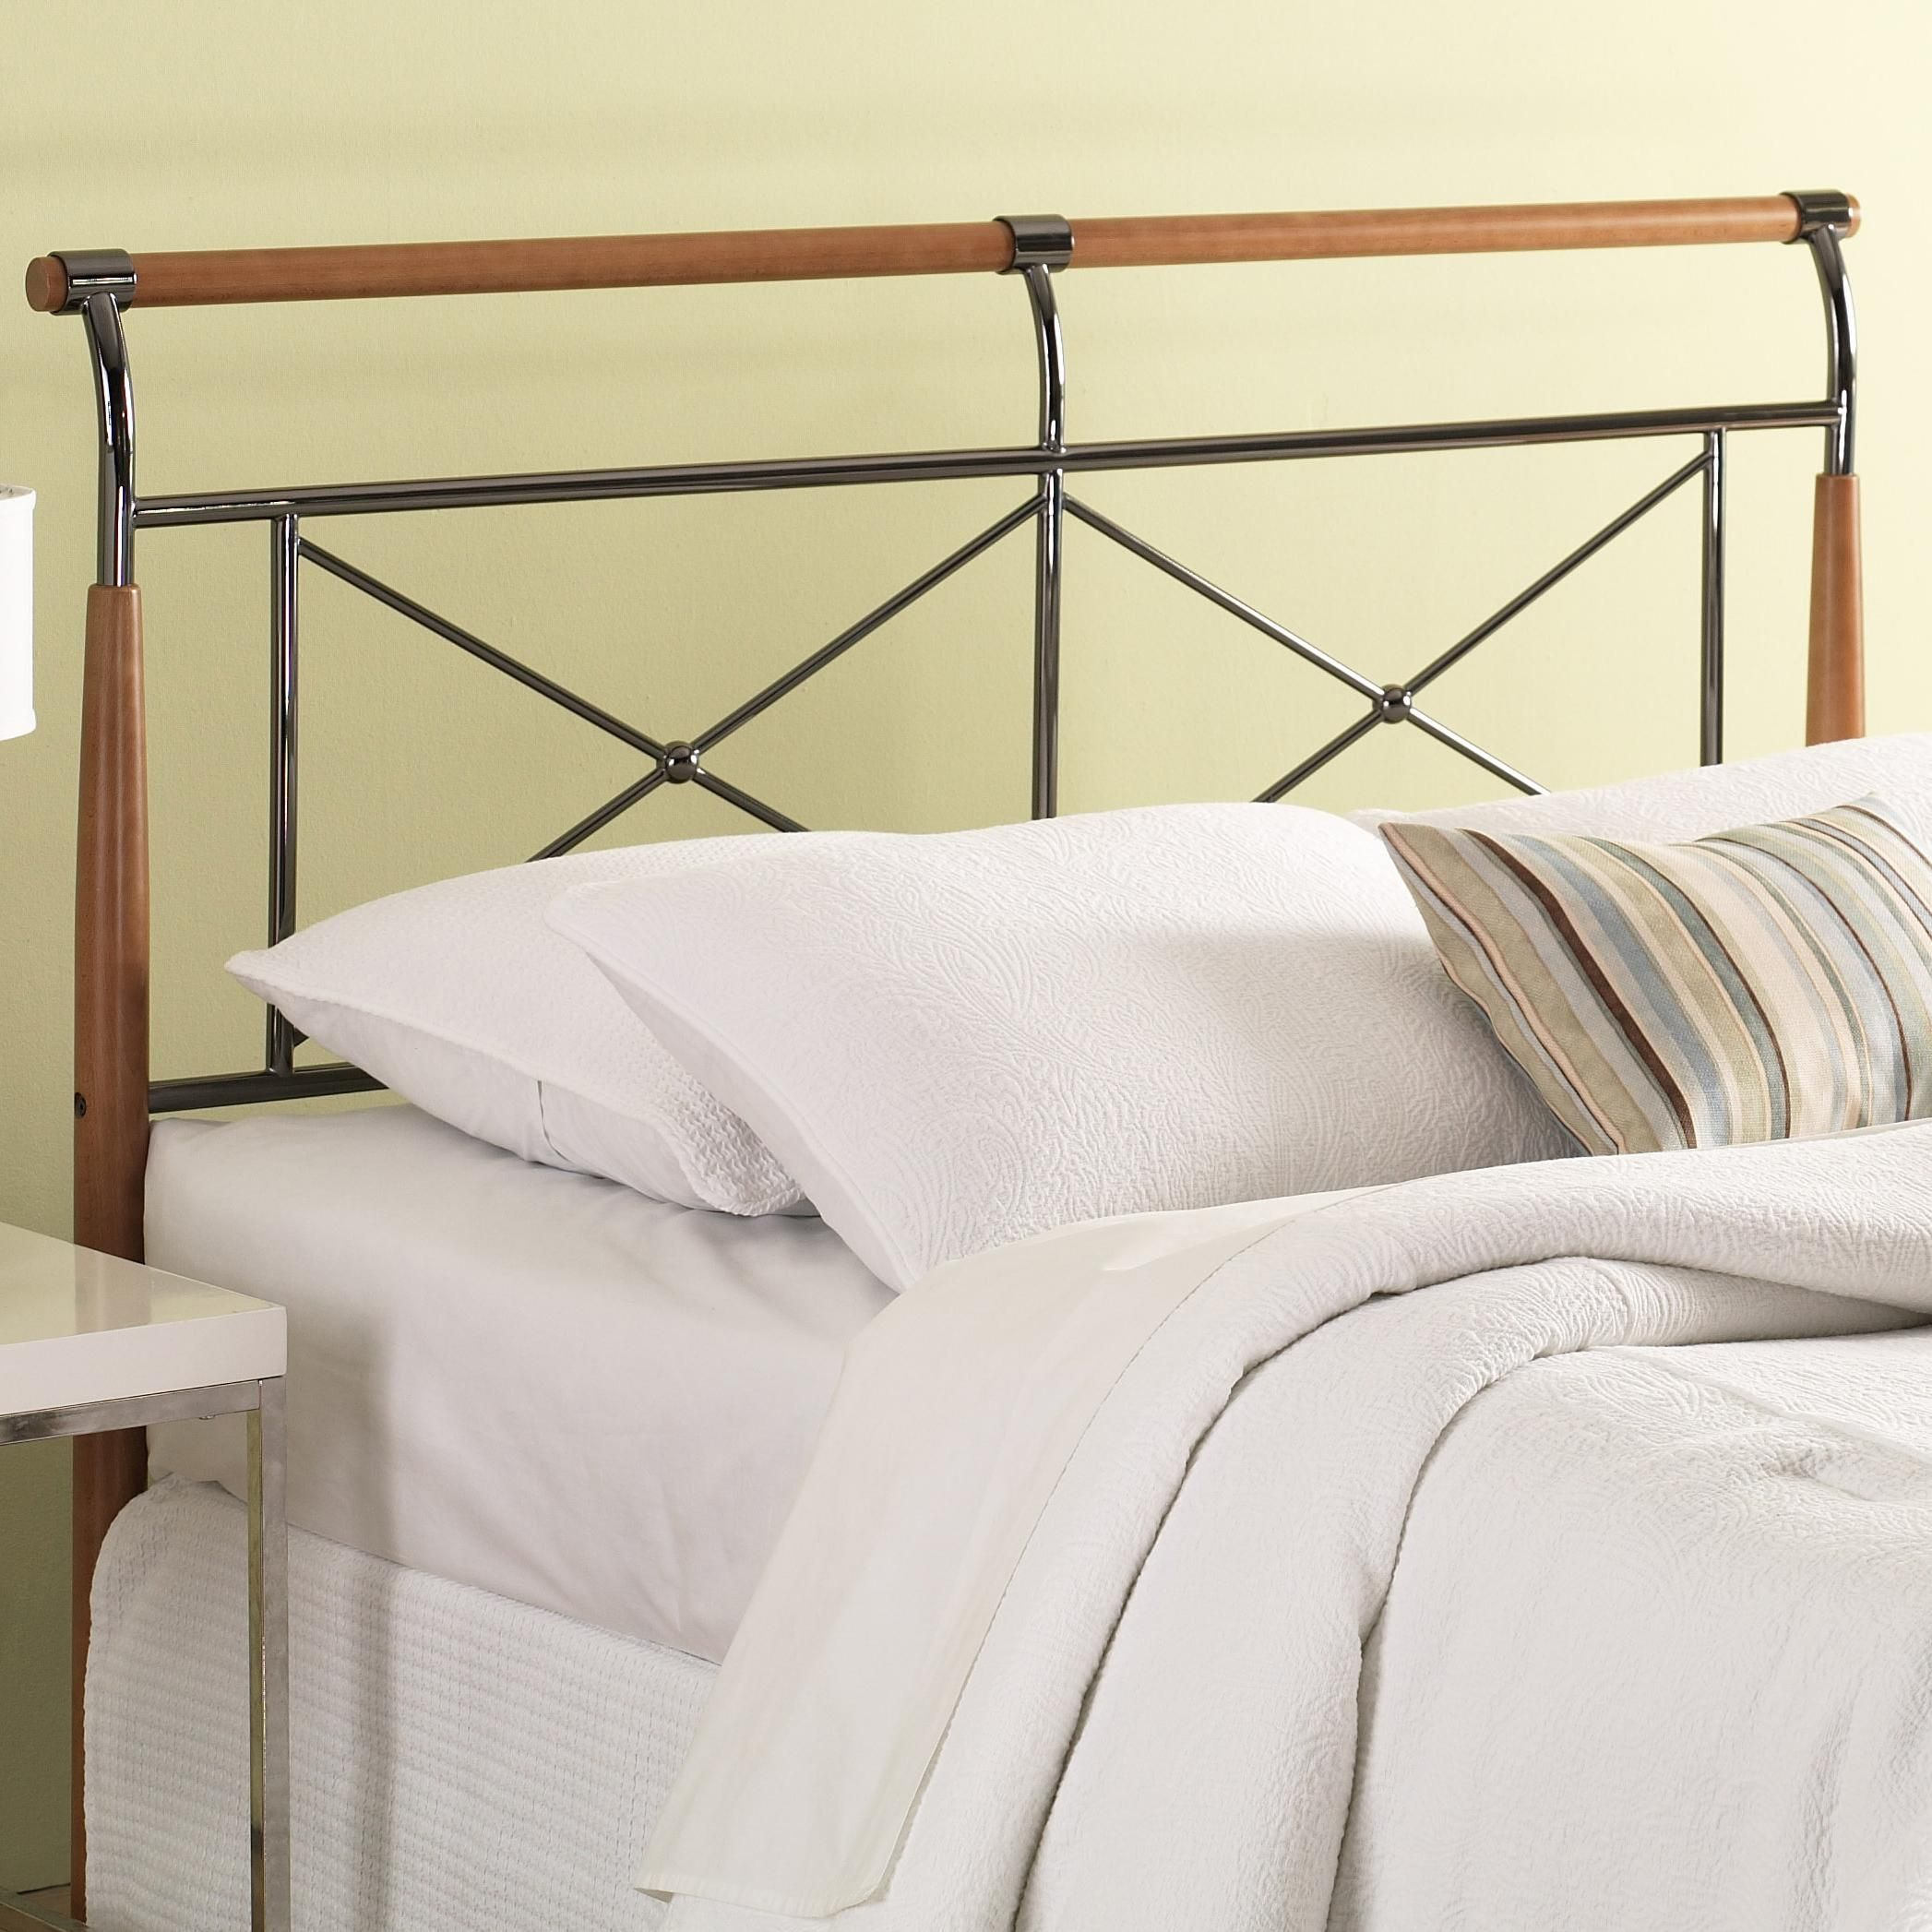 Wood and Metal Beds Queen Kendall Headboard by Fashion Bed